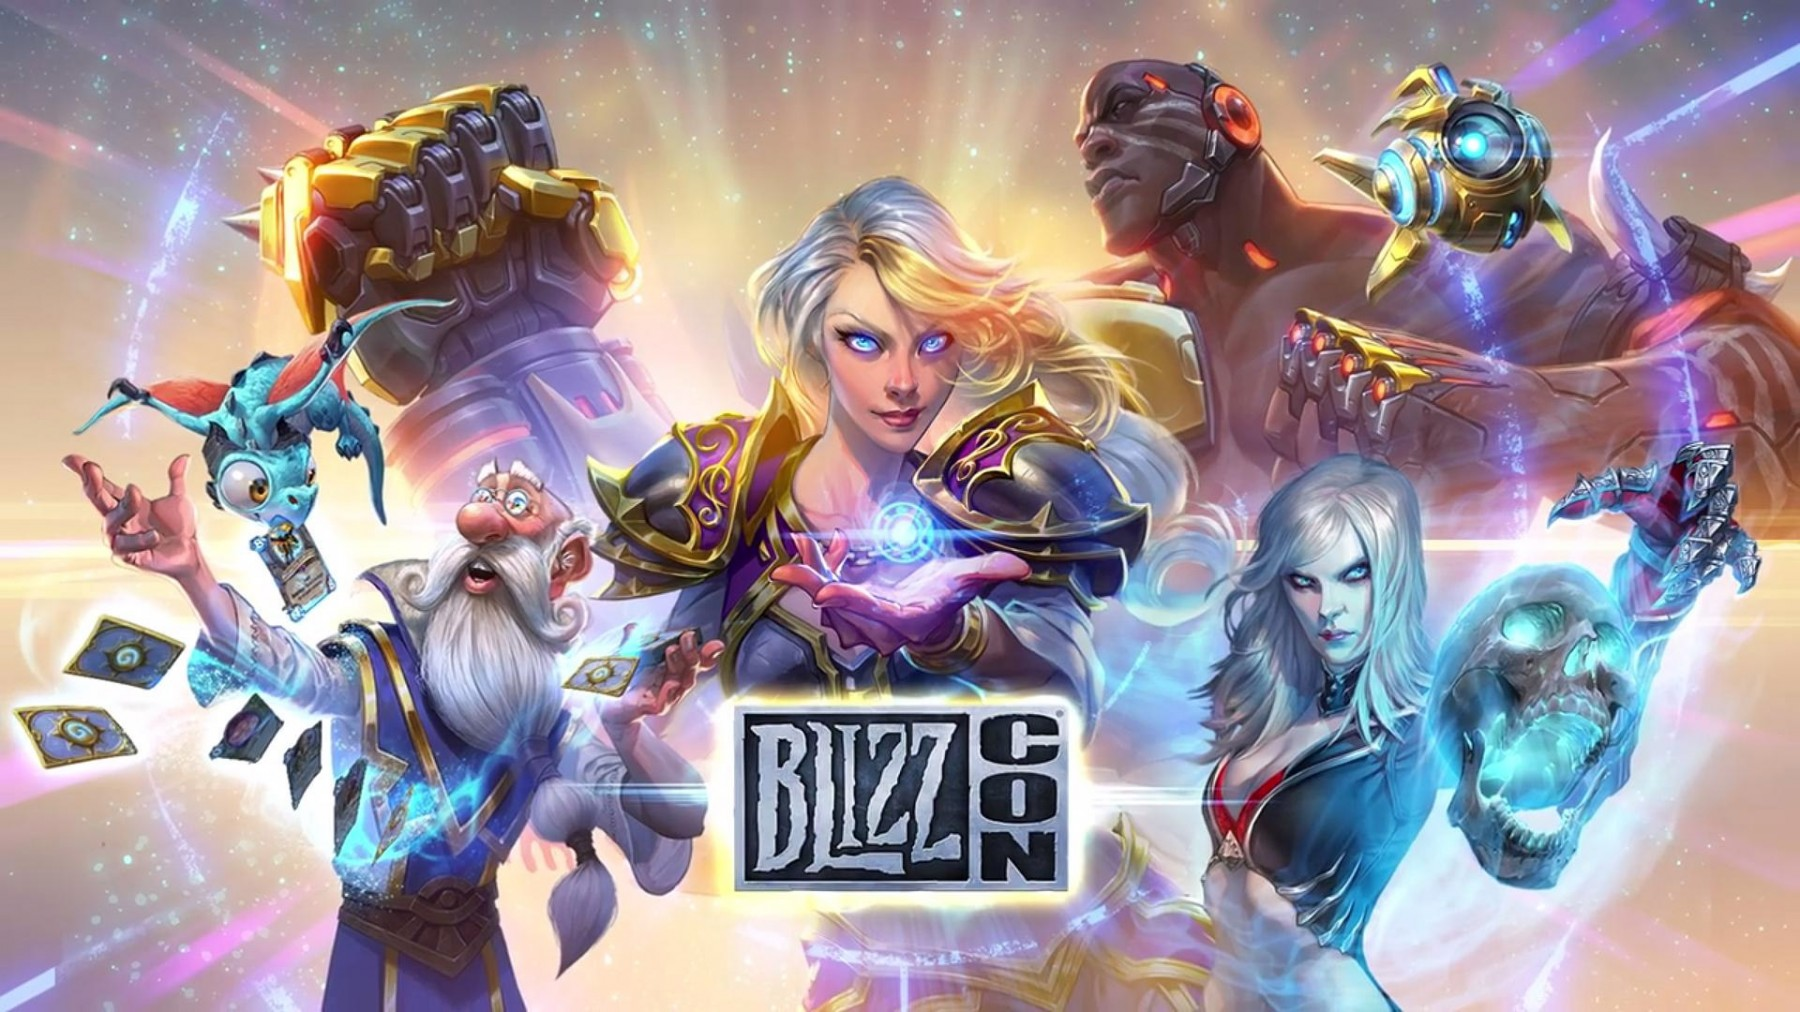 L'affiche officielle de la Blizzcon 2017